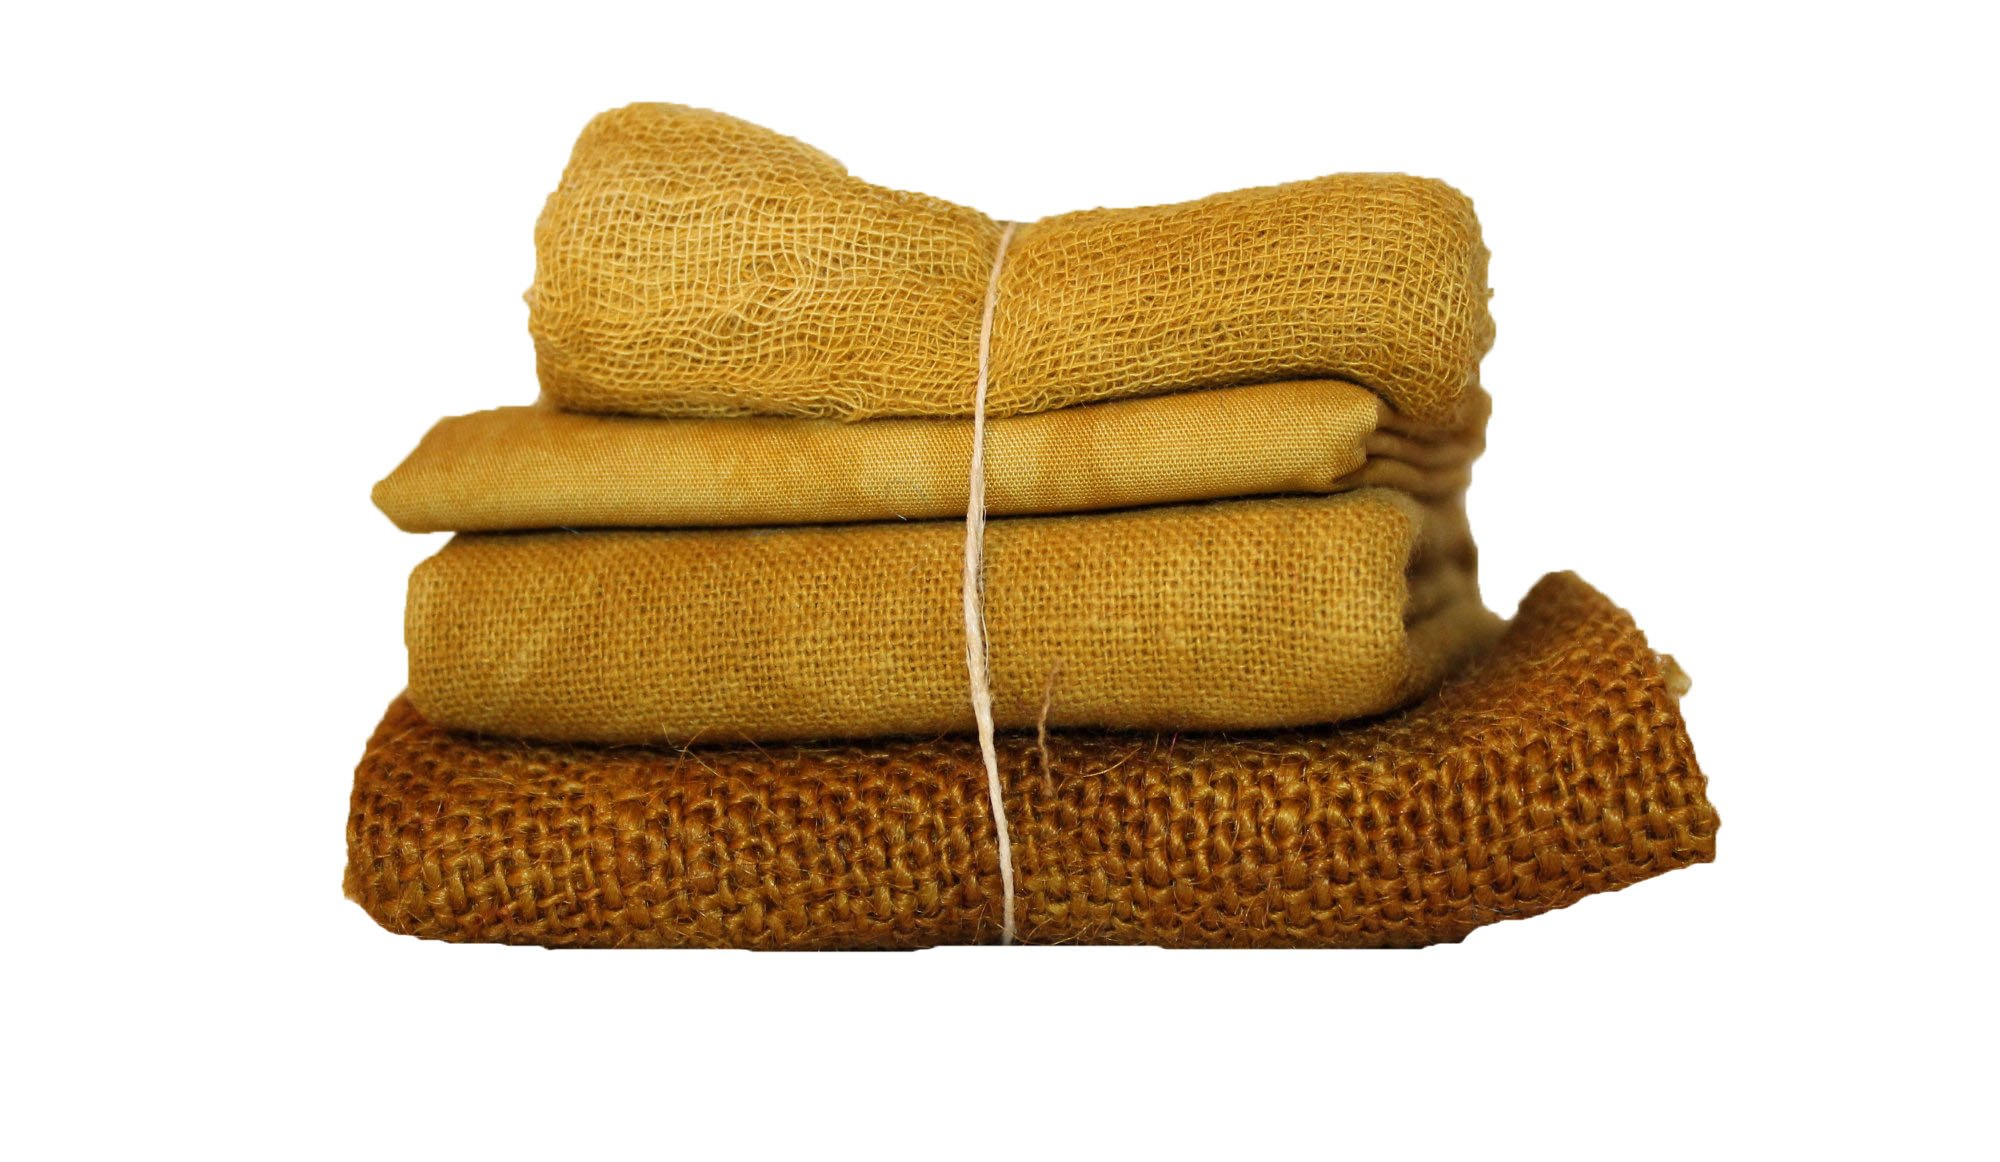 Spicy Mustard Bindle - Cheesecloth, Cotton, Osnaburg, & Burlap